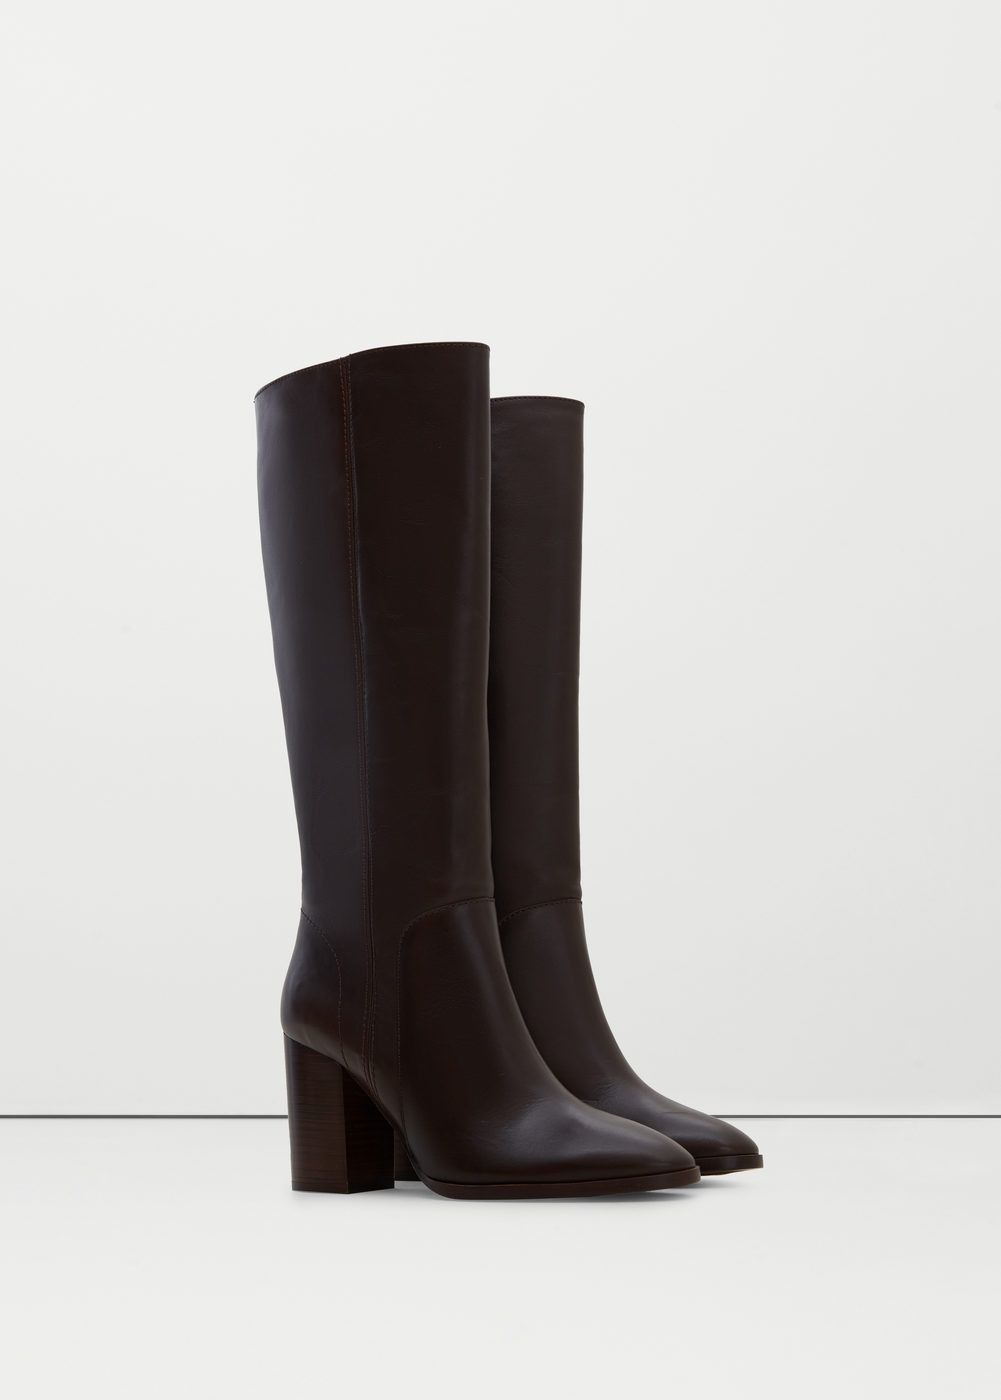 Leather high-leg boots   MANGO High Leg Boots, Ankle Boots, Mango Outlet c78b5475f82a